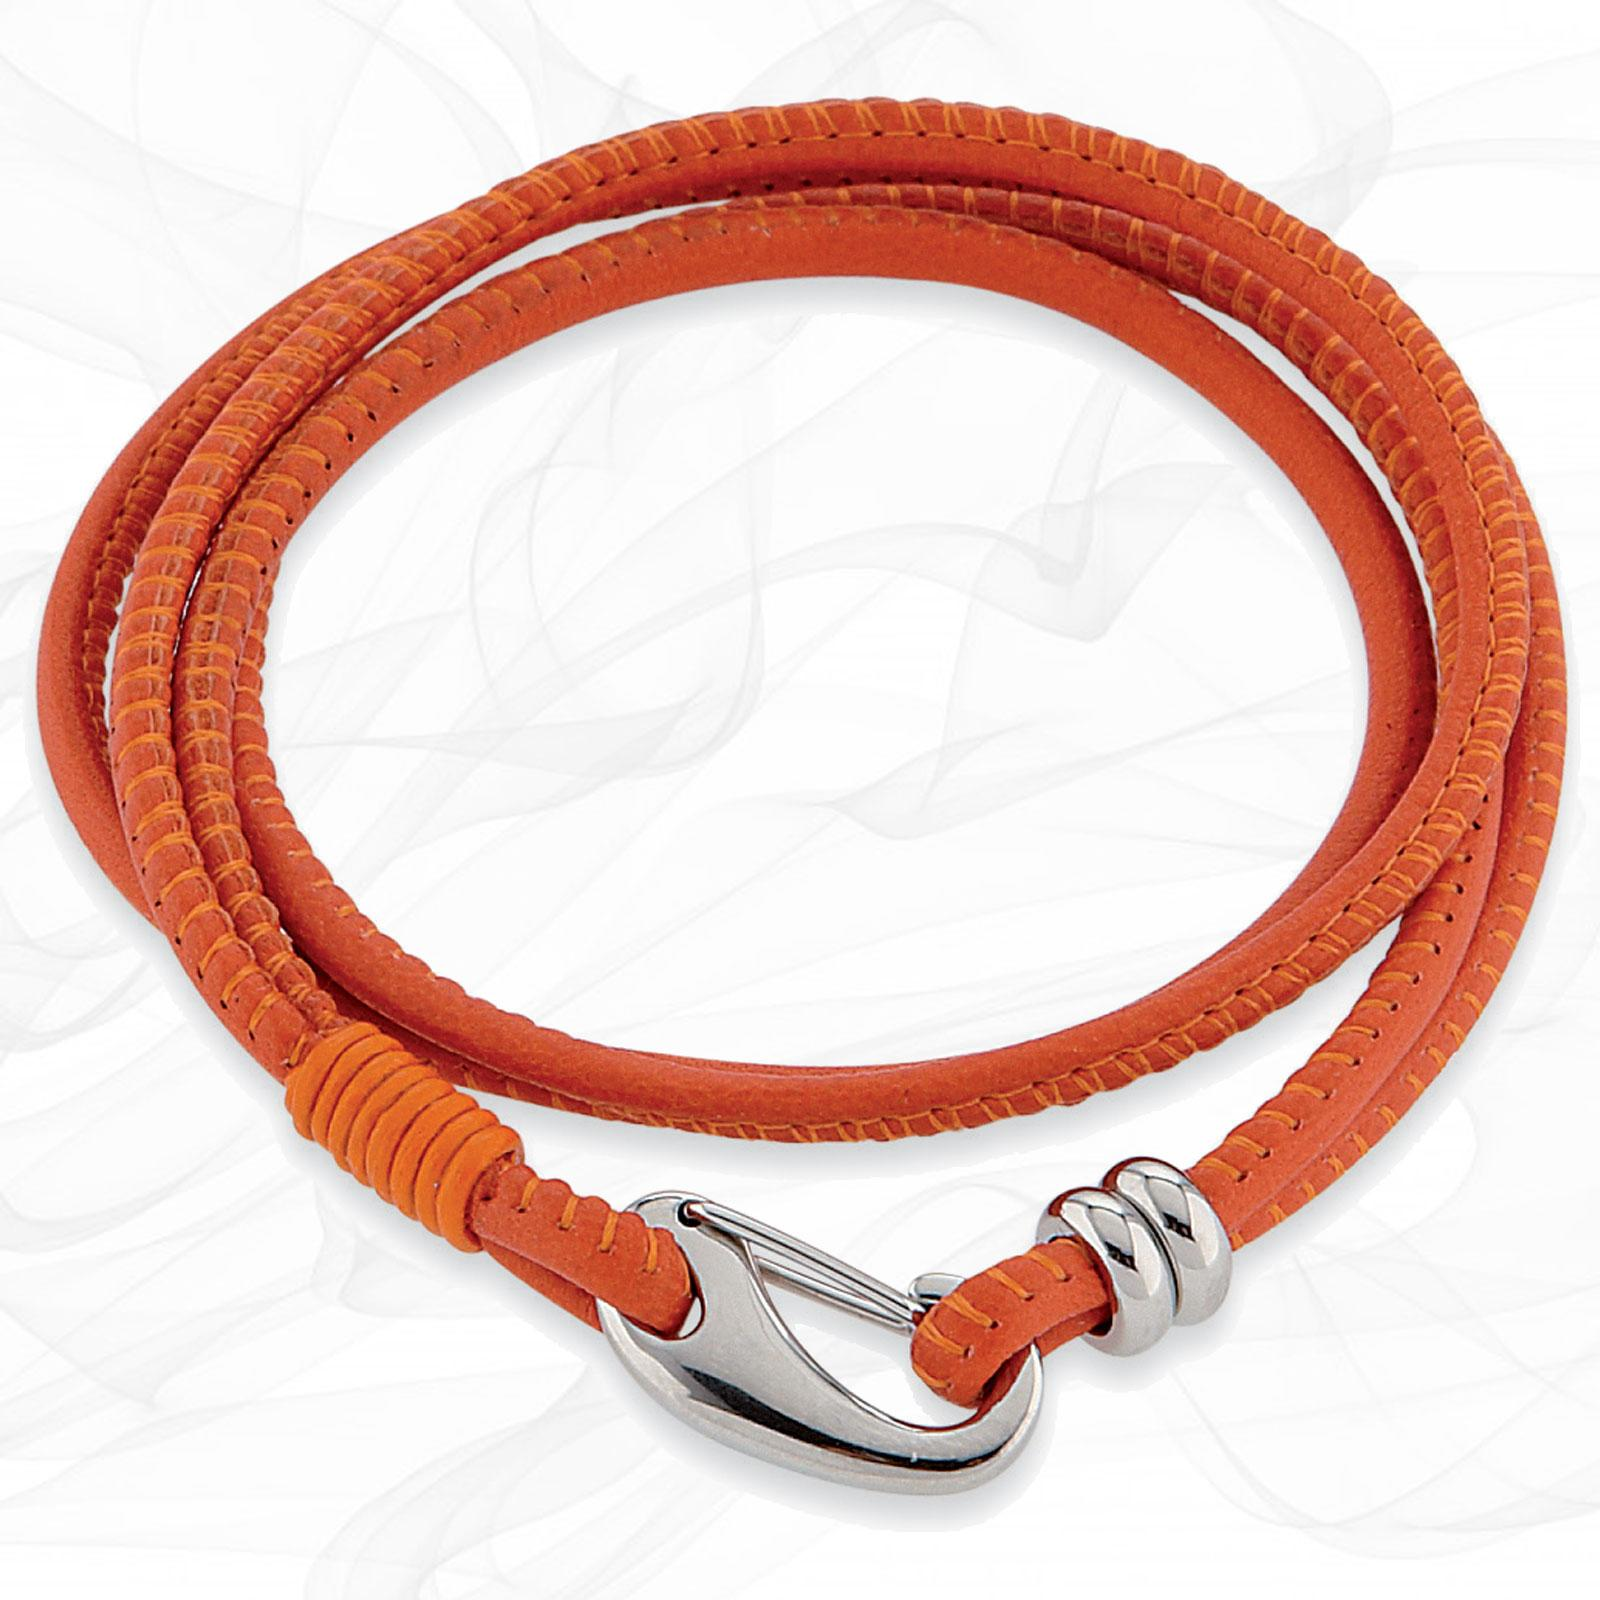 Simple smooth Orange 3mm Napa Quad wrap Leather Bracelet for Women